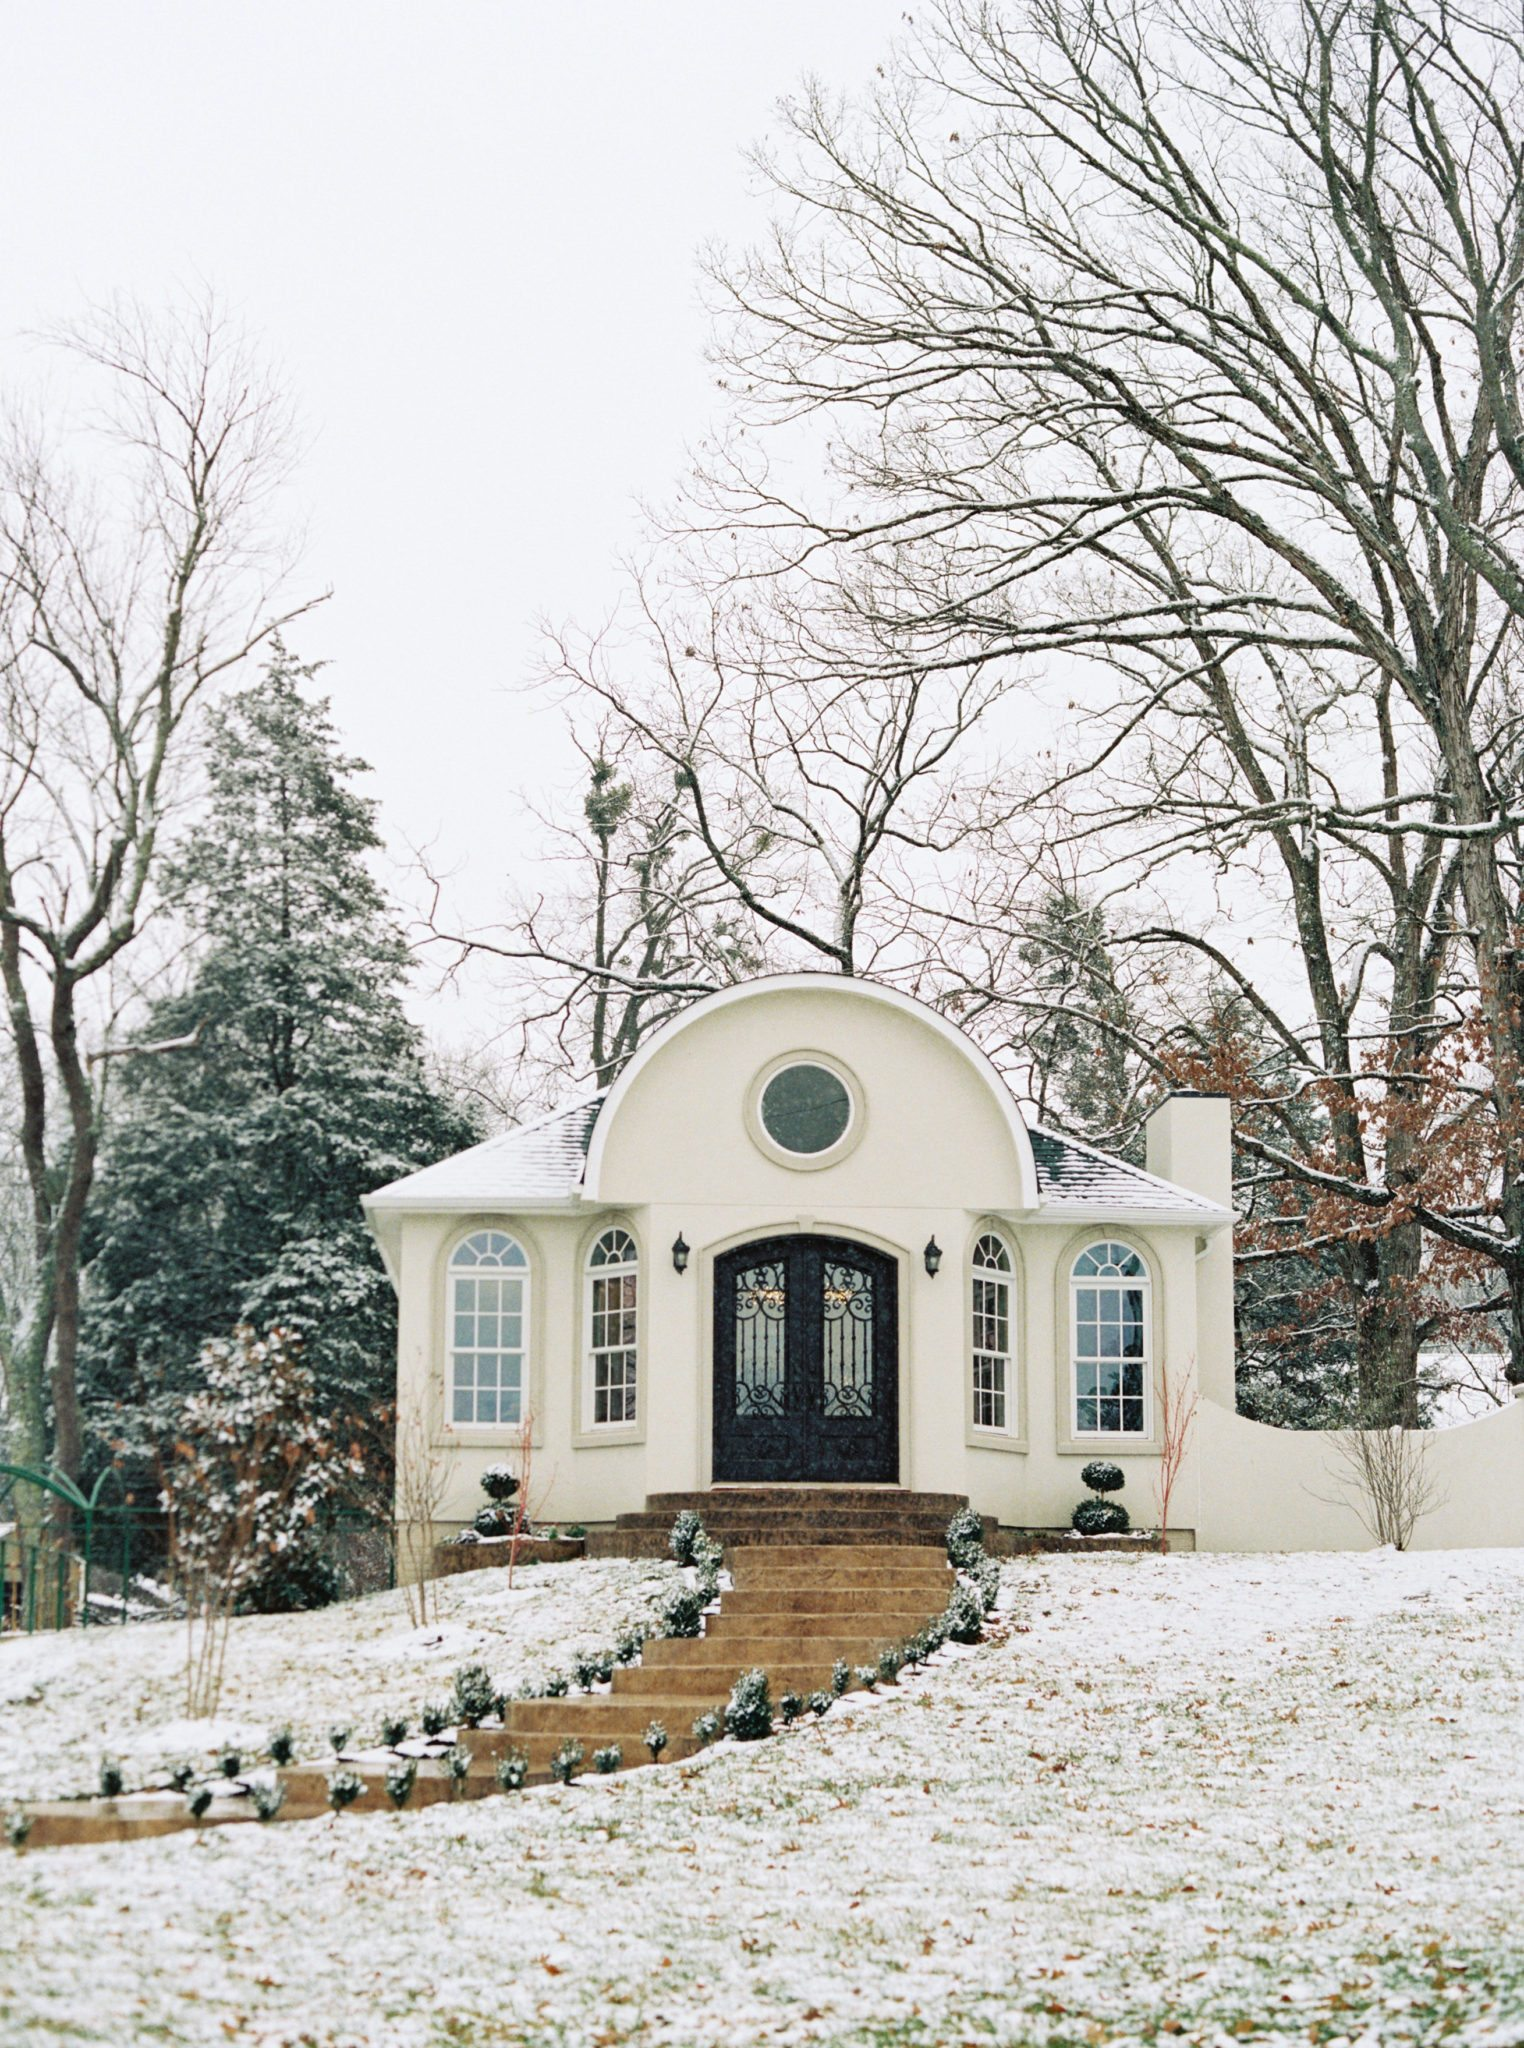 KimStockwellAshleyandMattMoraisVIneyardWedding5 Winter Weddings - A Snow Fairy Tale